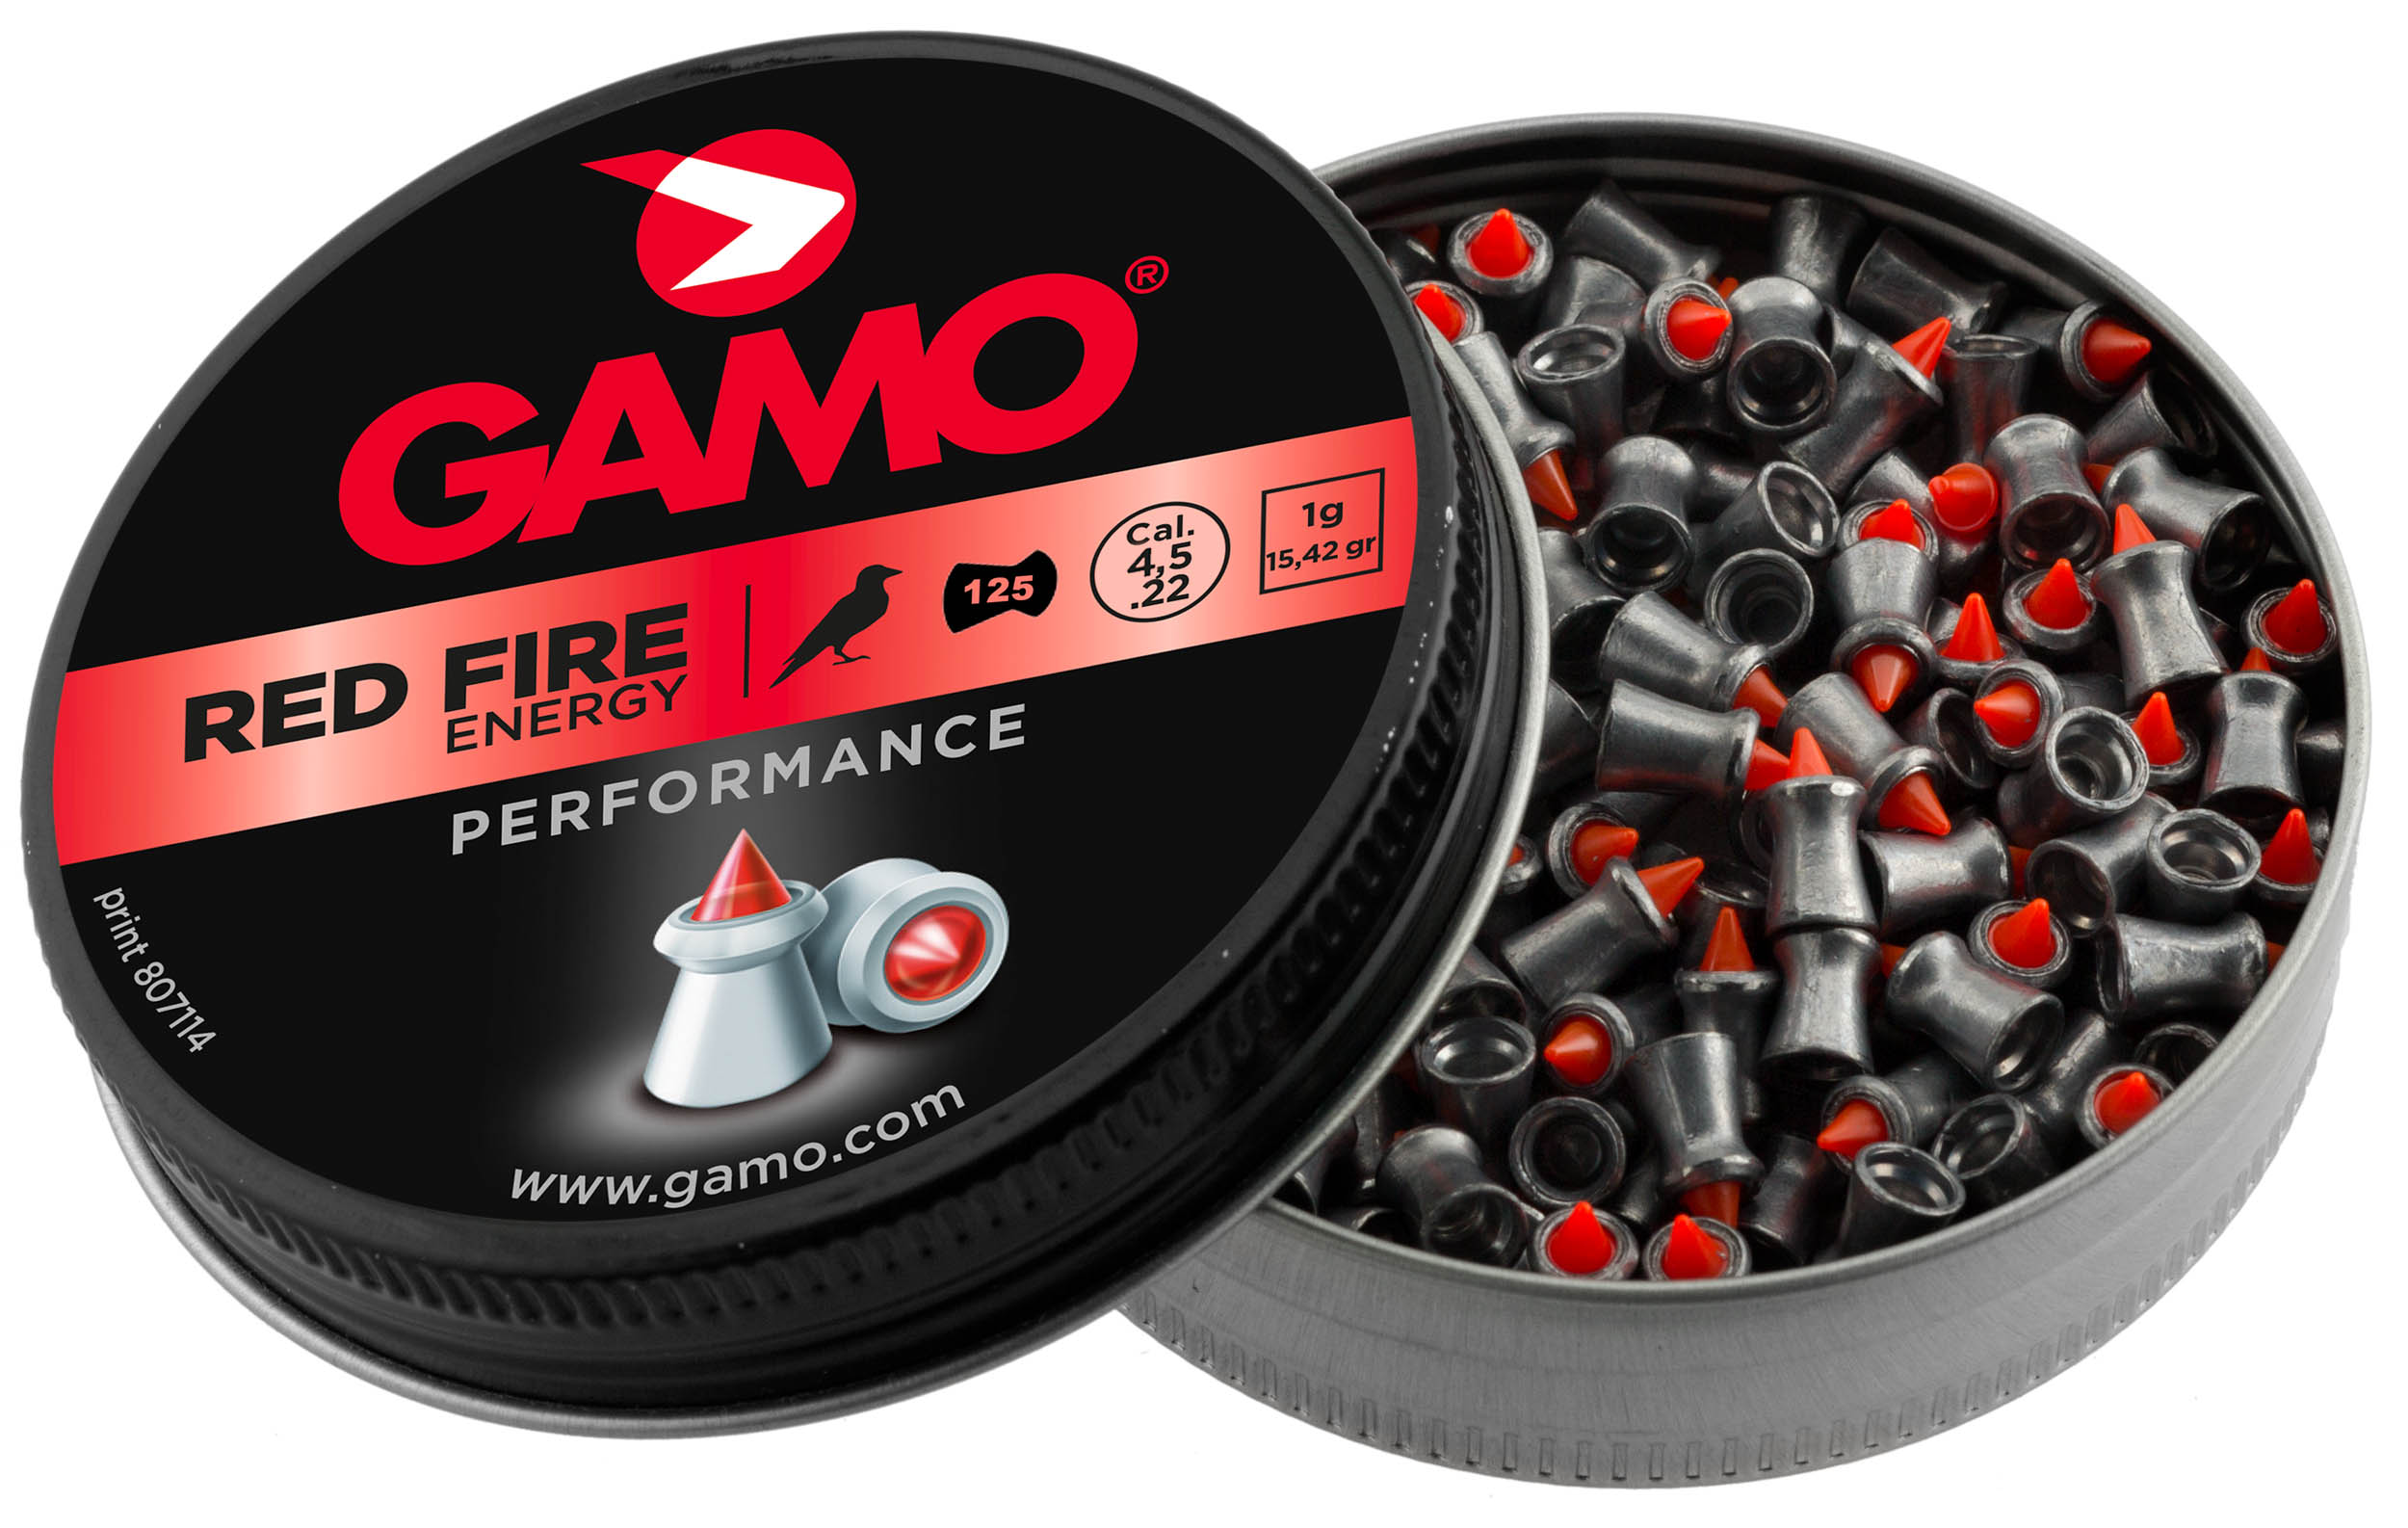 G3370-3-GAMO Plombs RED FIRE - ENERGY - (125p. - cal.4.5) - G3370